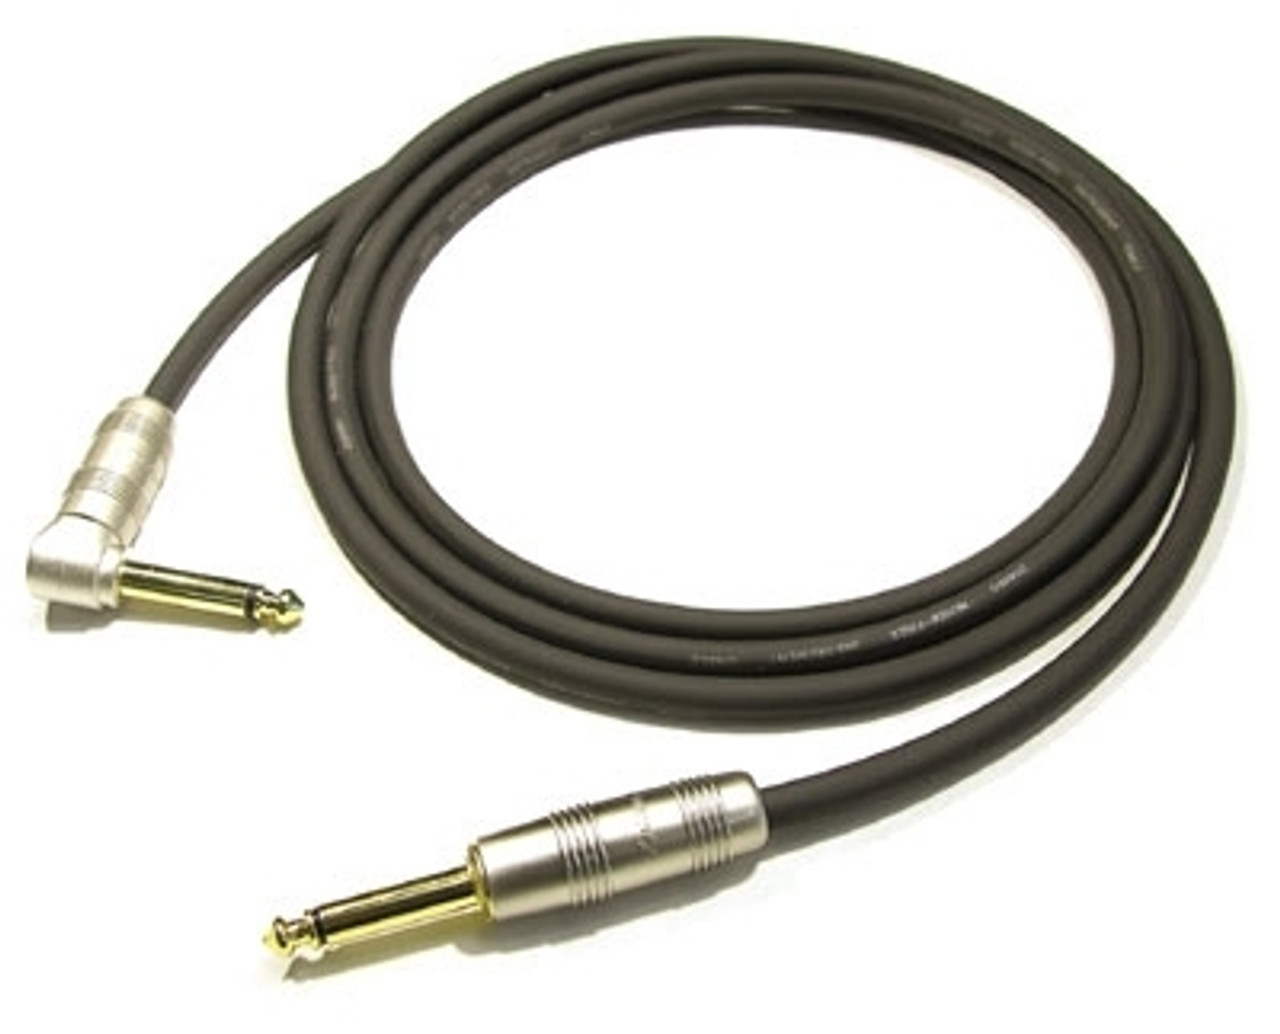 Kirlin Jack To Jack Cables from www.superstrings.com